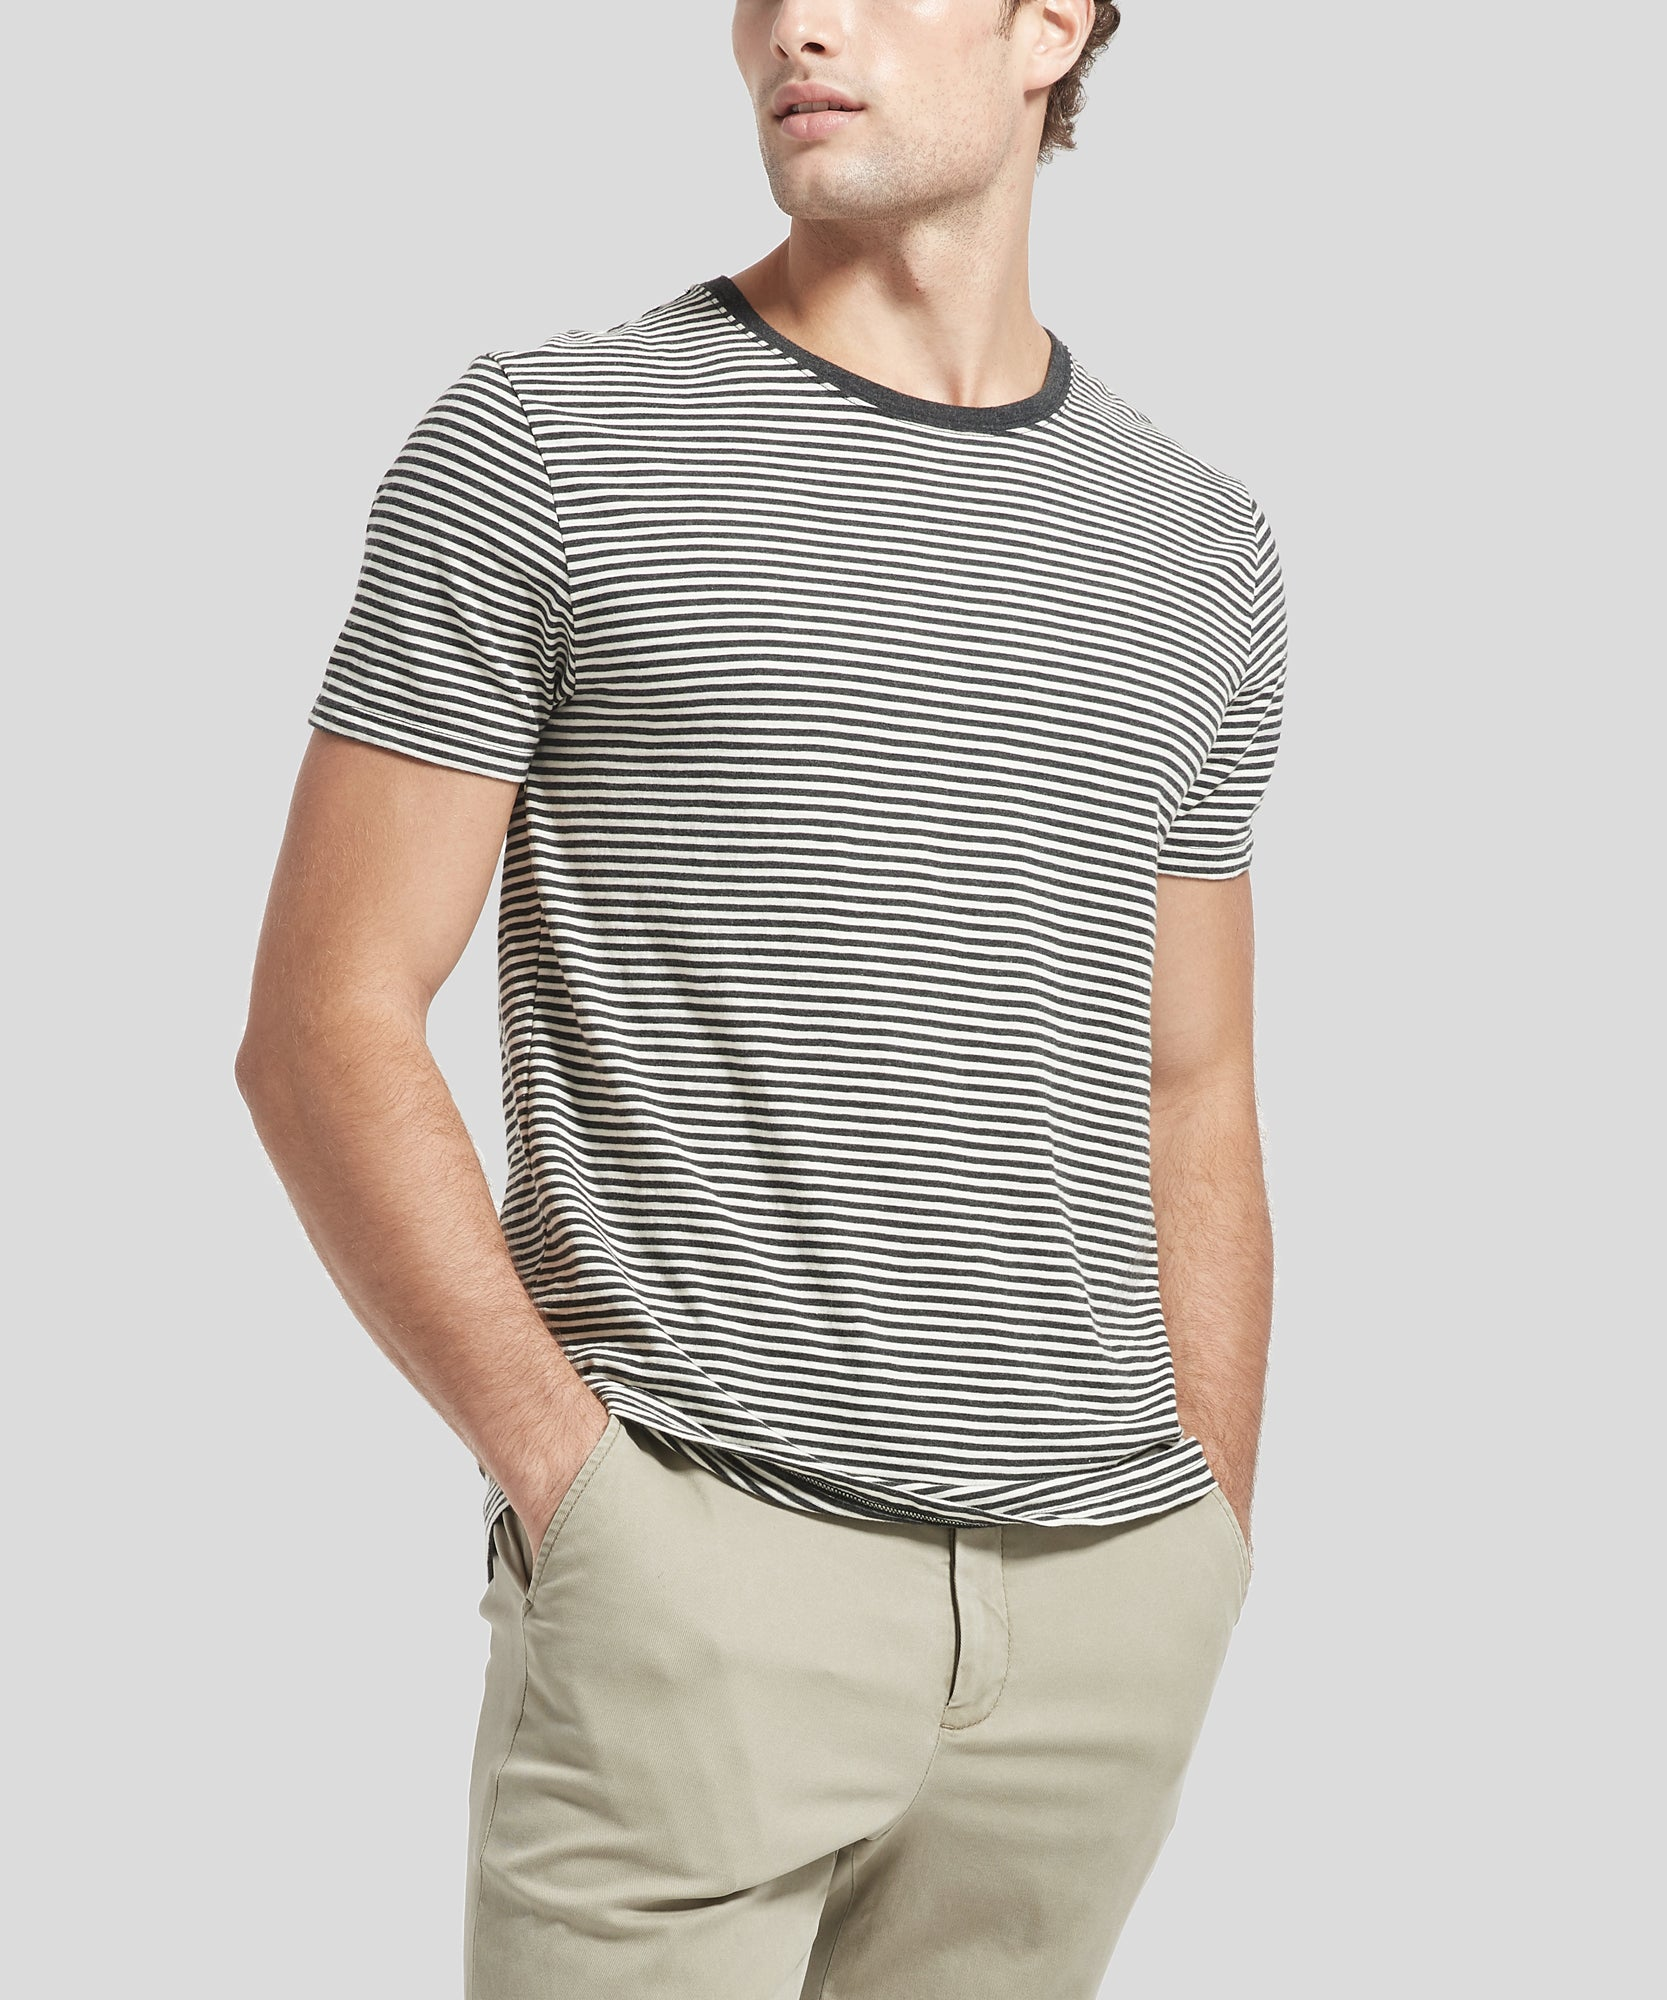 ATM Striped Crew Neck Pocket Tee